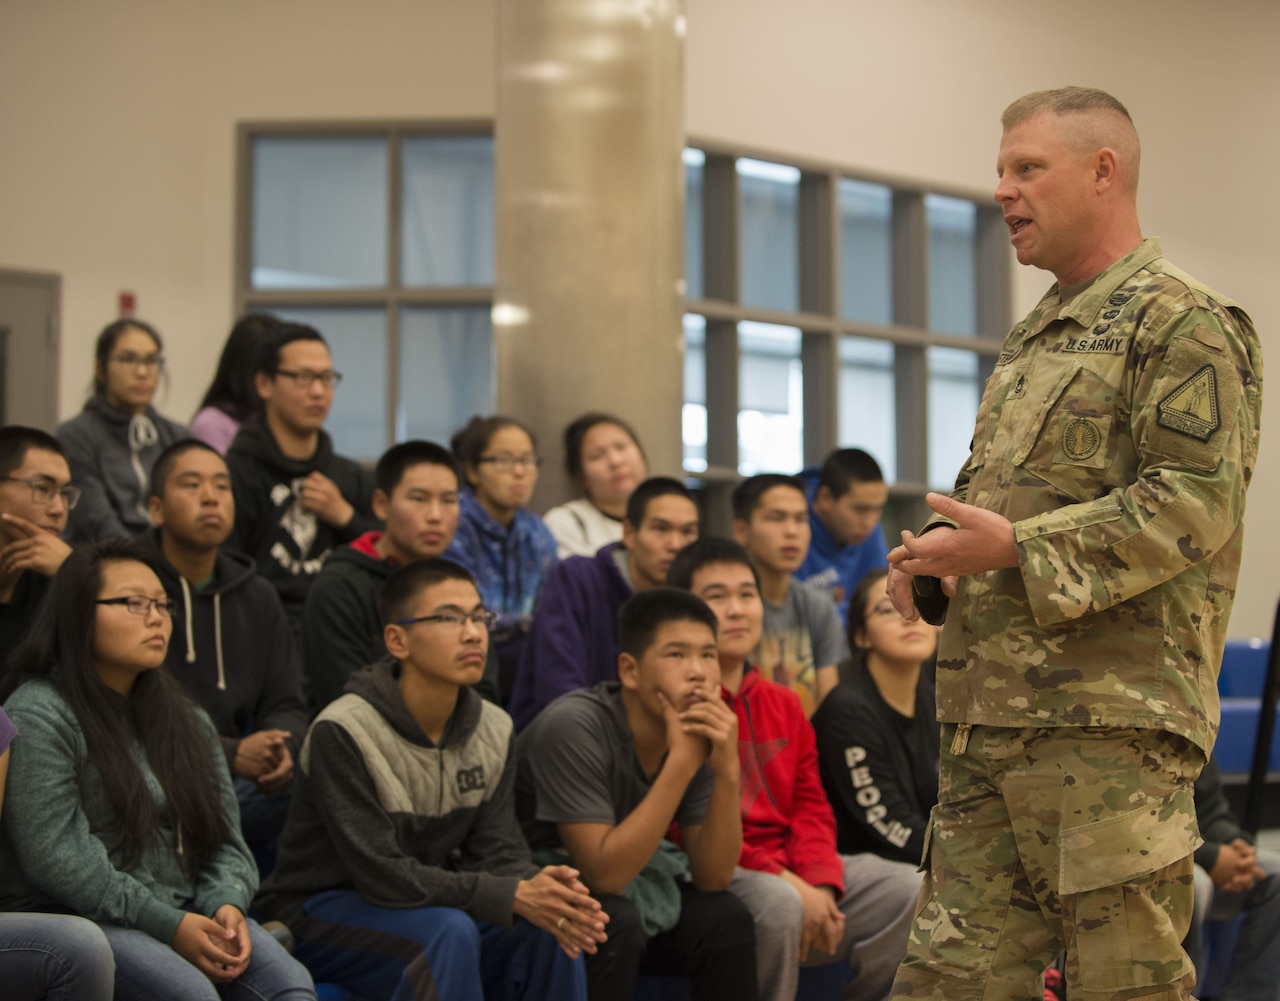 A soldier speaks to high school students during a recruiting visit